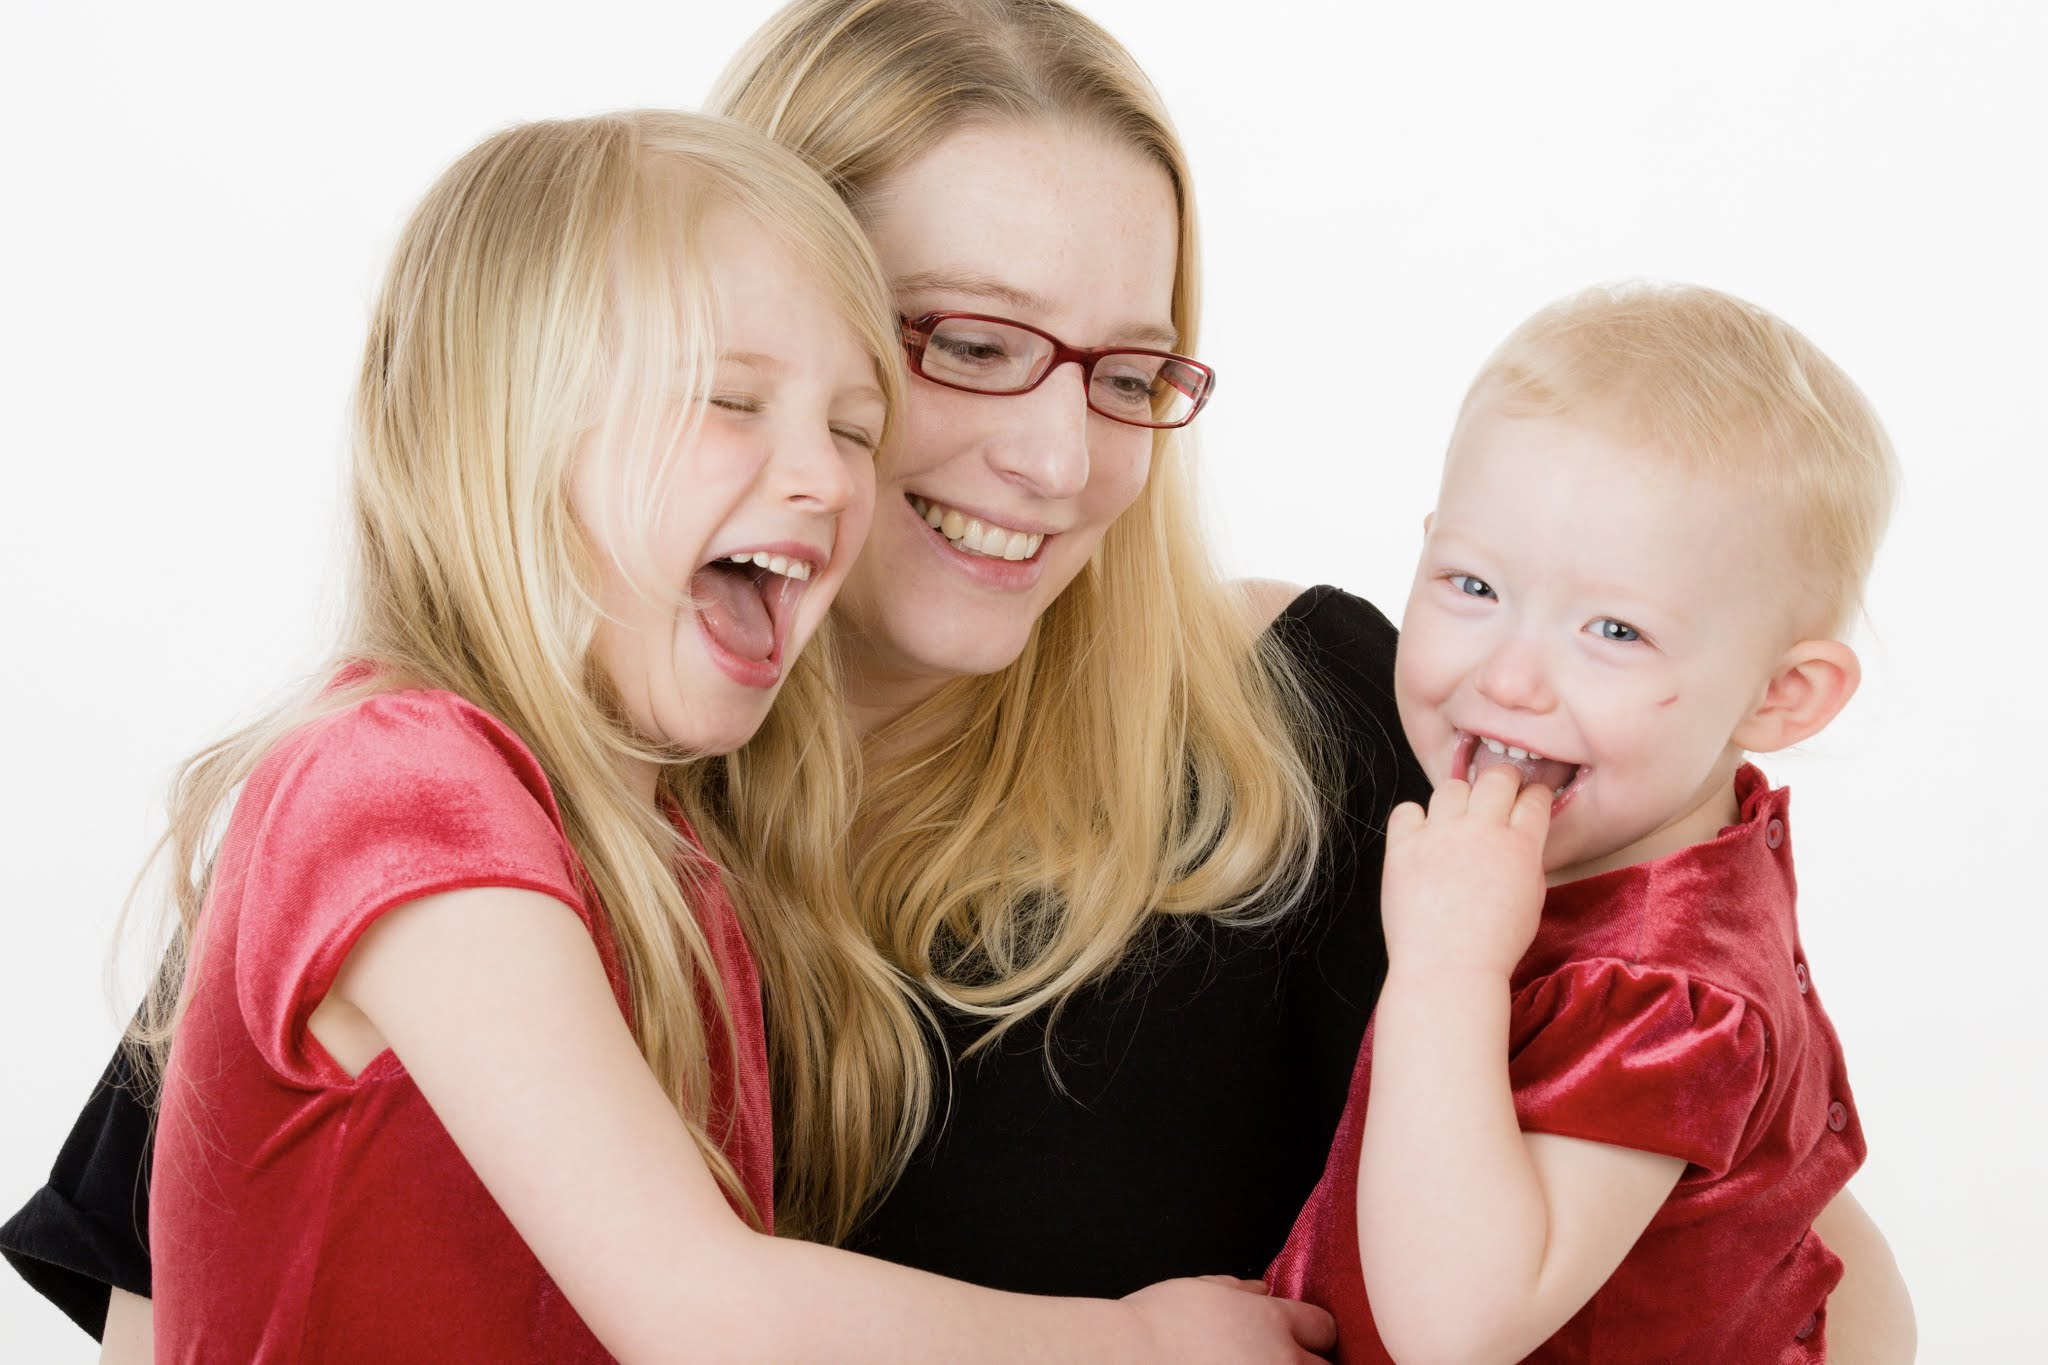 A professional image of me and my 2 daughters. My younger daughter has a healing cut visible on her face